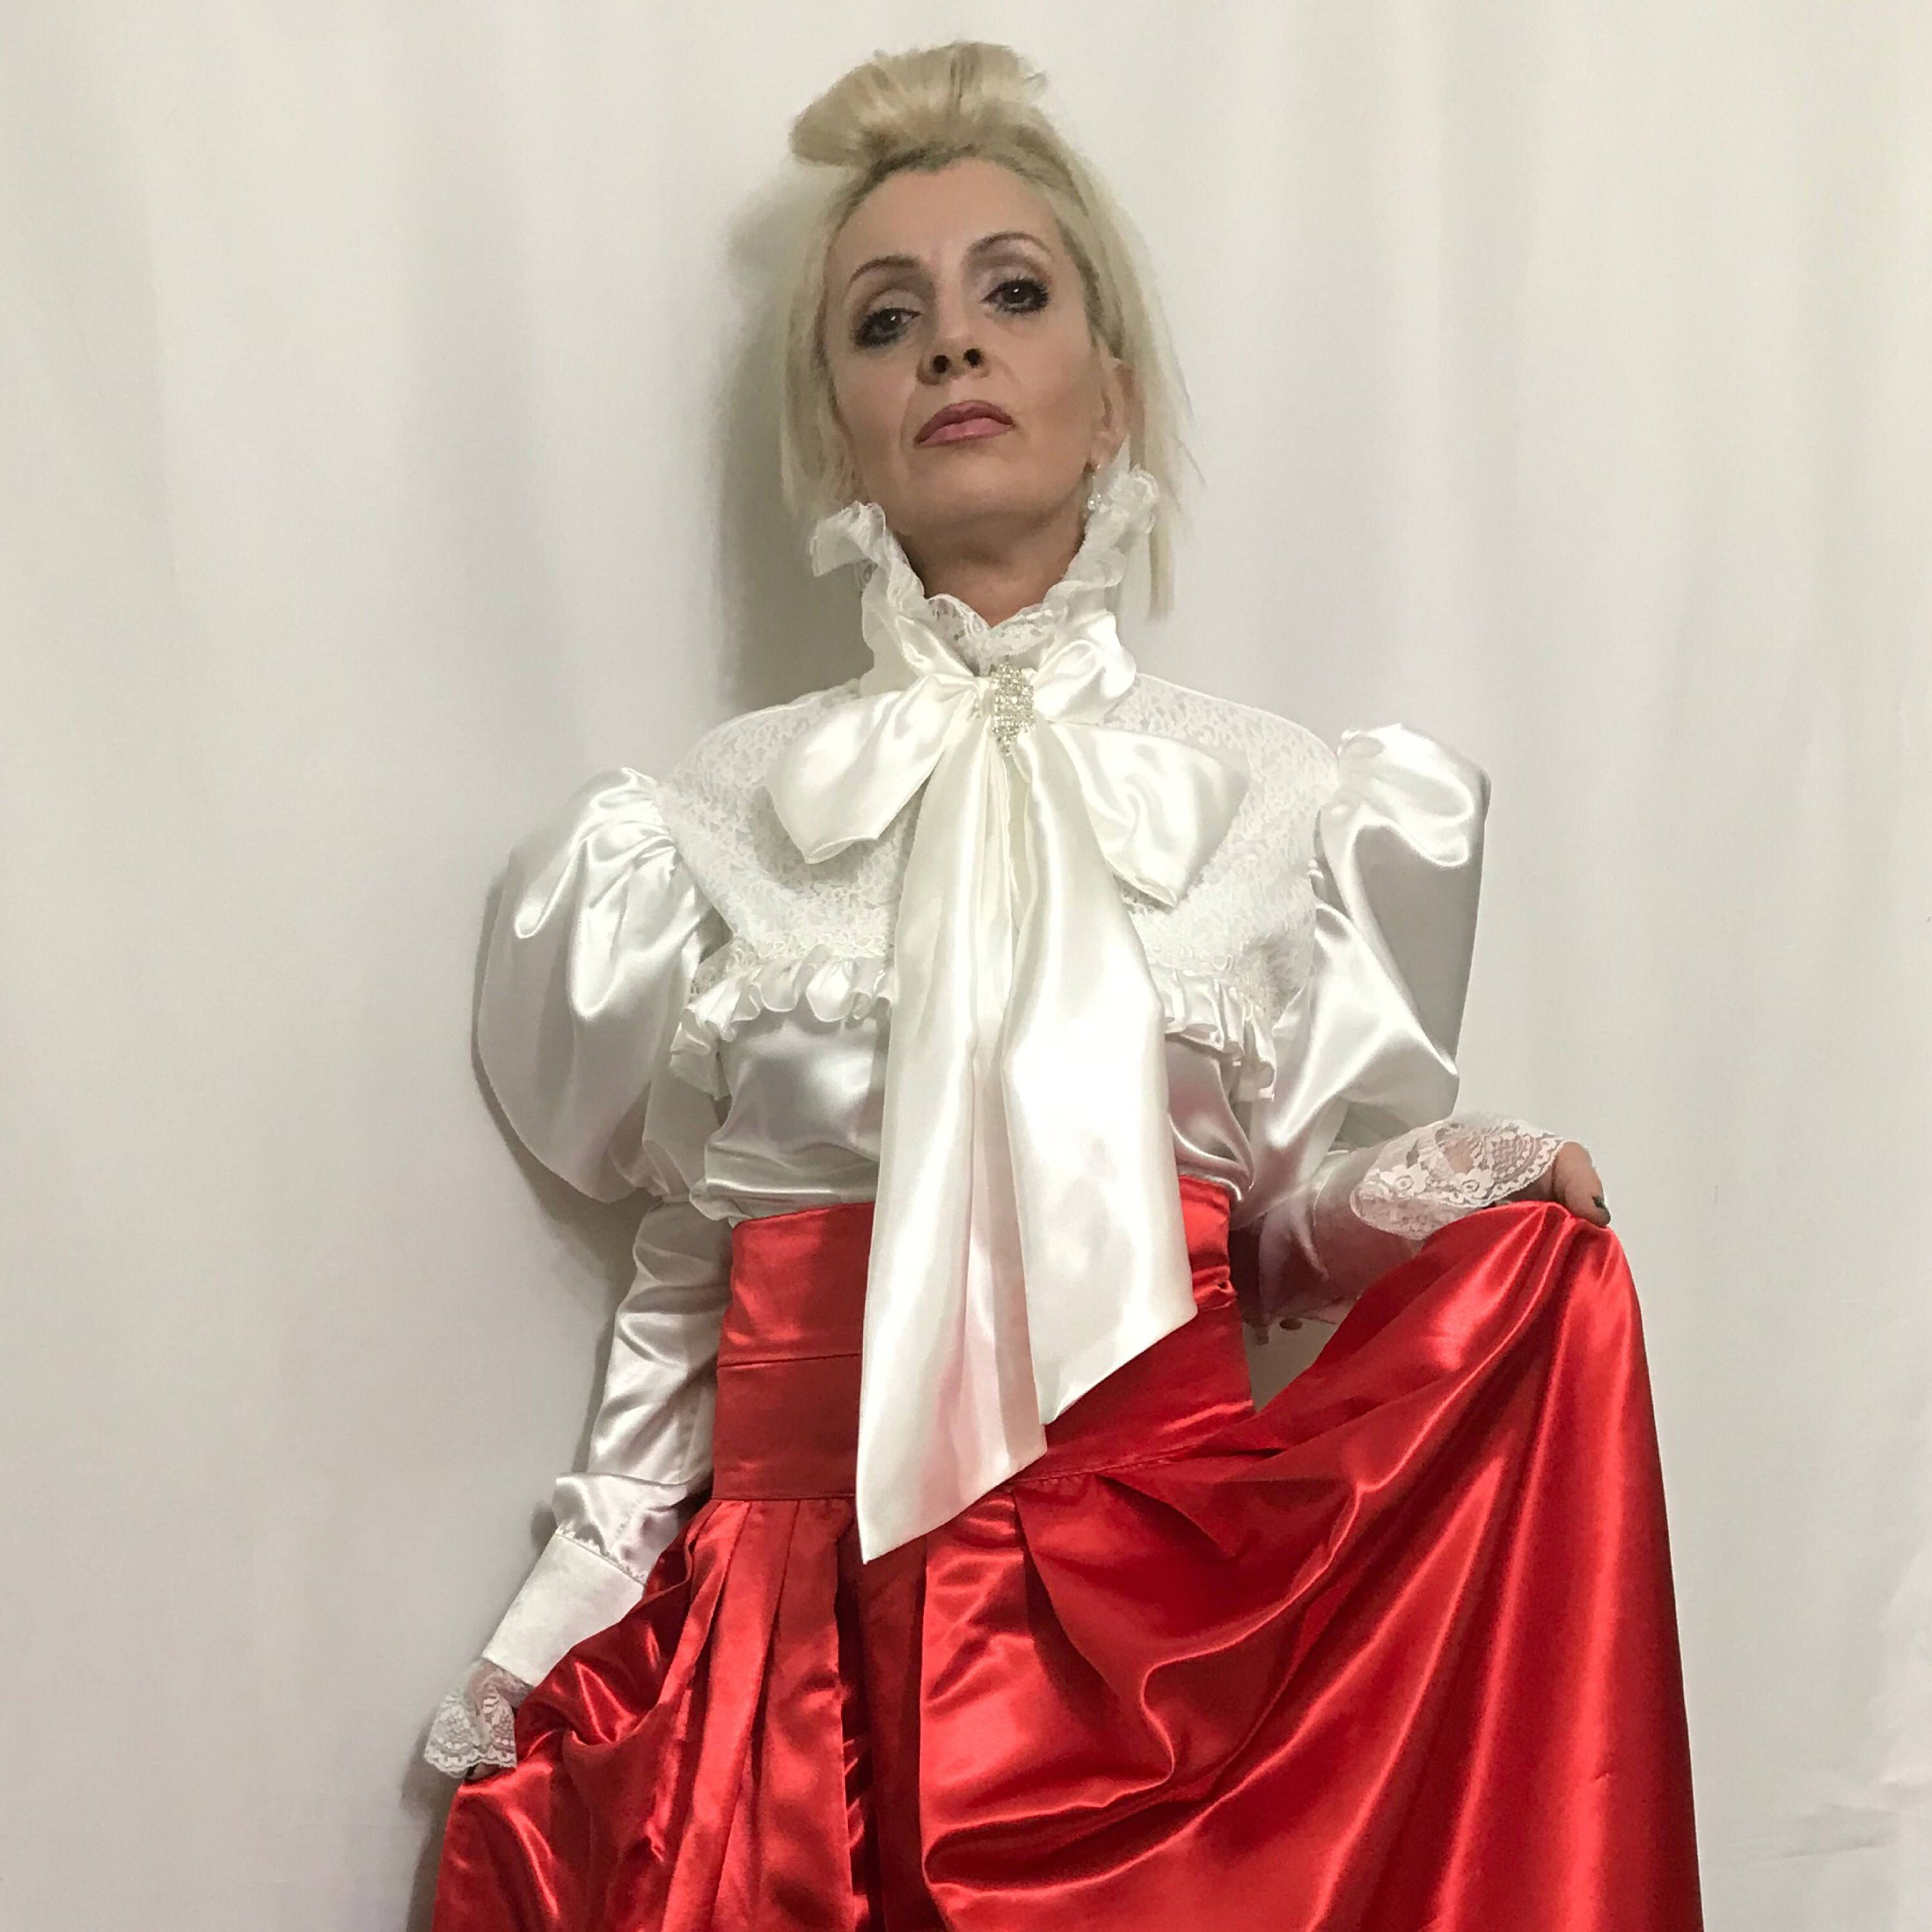 253aa91b3085bd Excited to share this item from my #etsy shop: Steampunk Victorian Blouse  in White Satin With Leg O'Mutton Sleeves #women #lolita #puffsleevestop